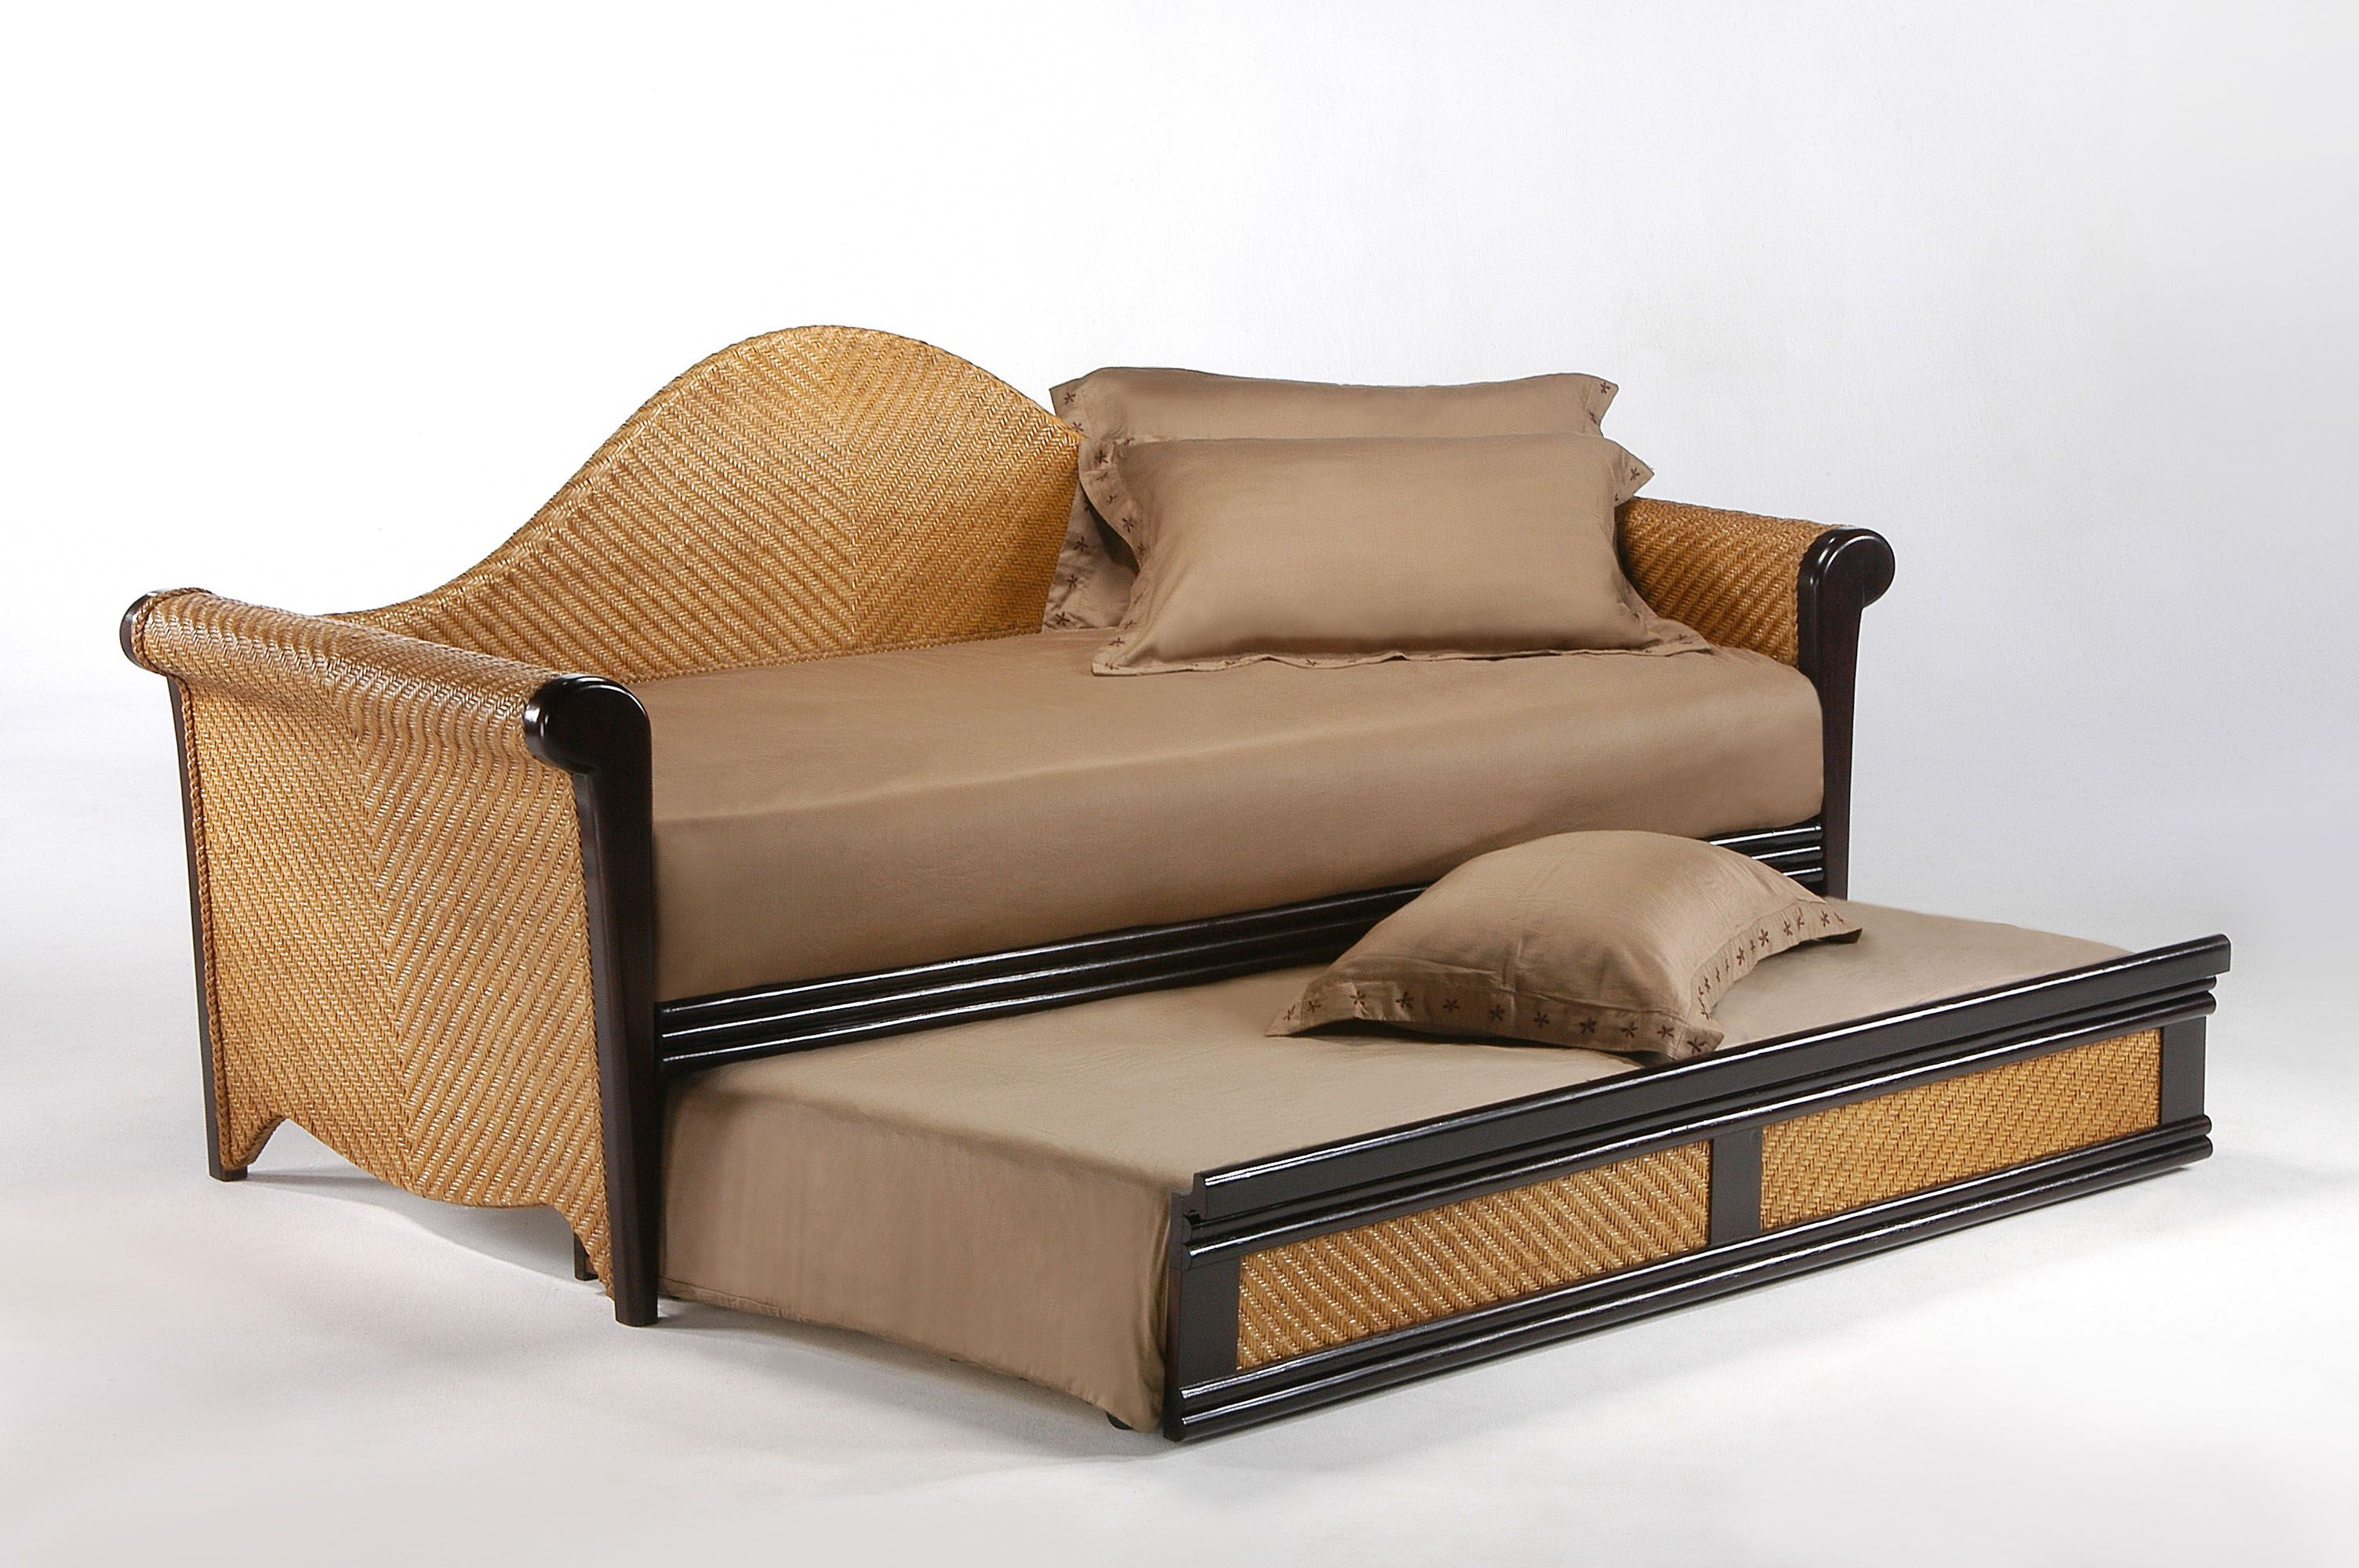 Rosebud Daybed Frame in 2020 Daybed with trundle